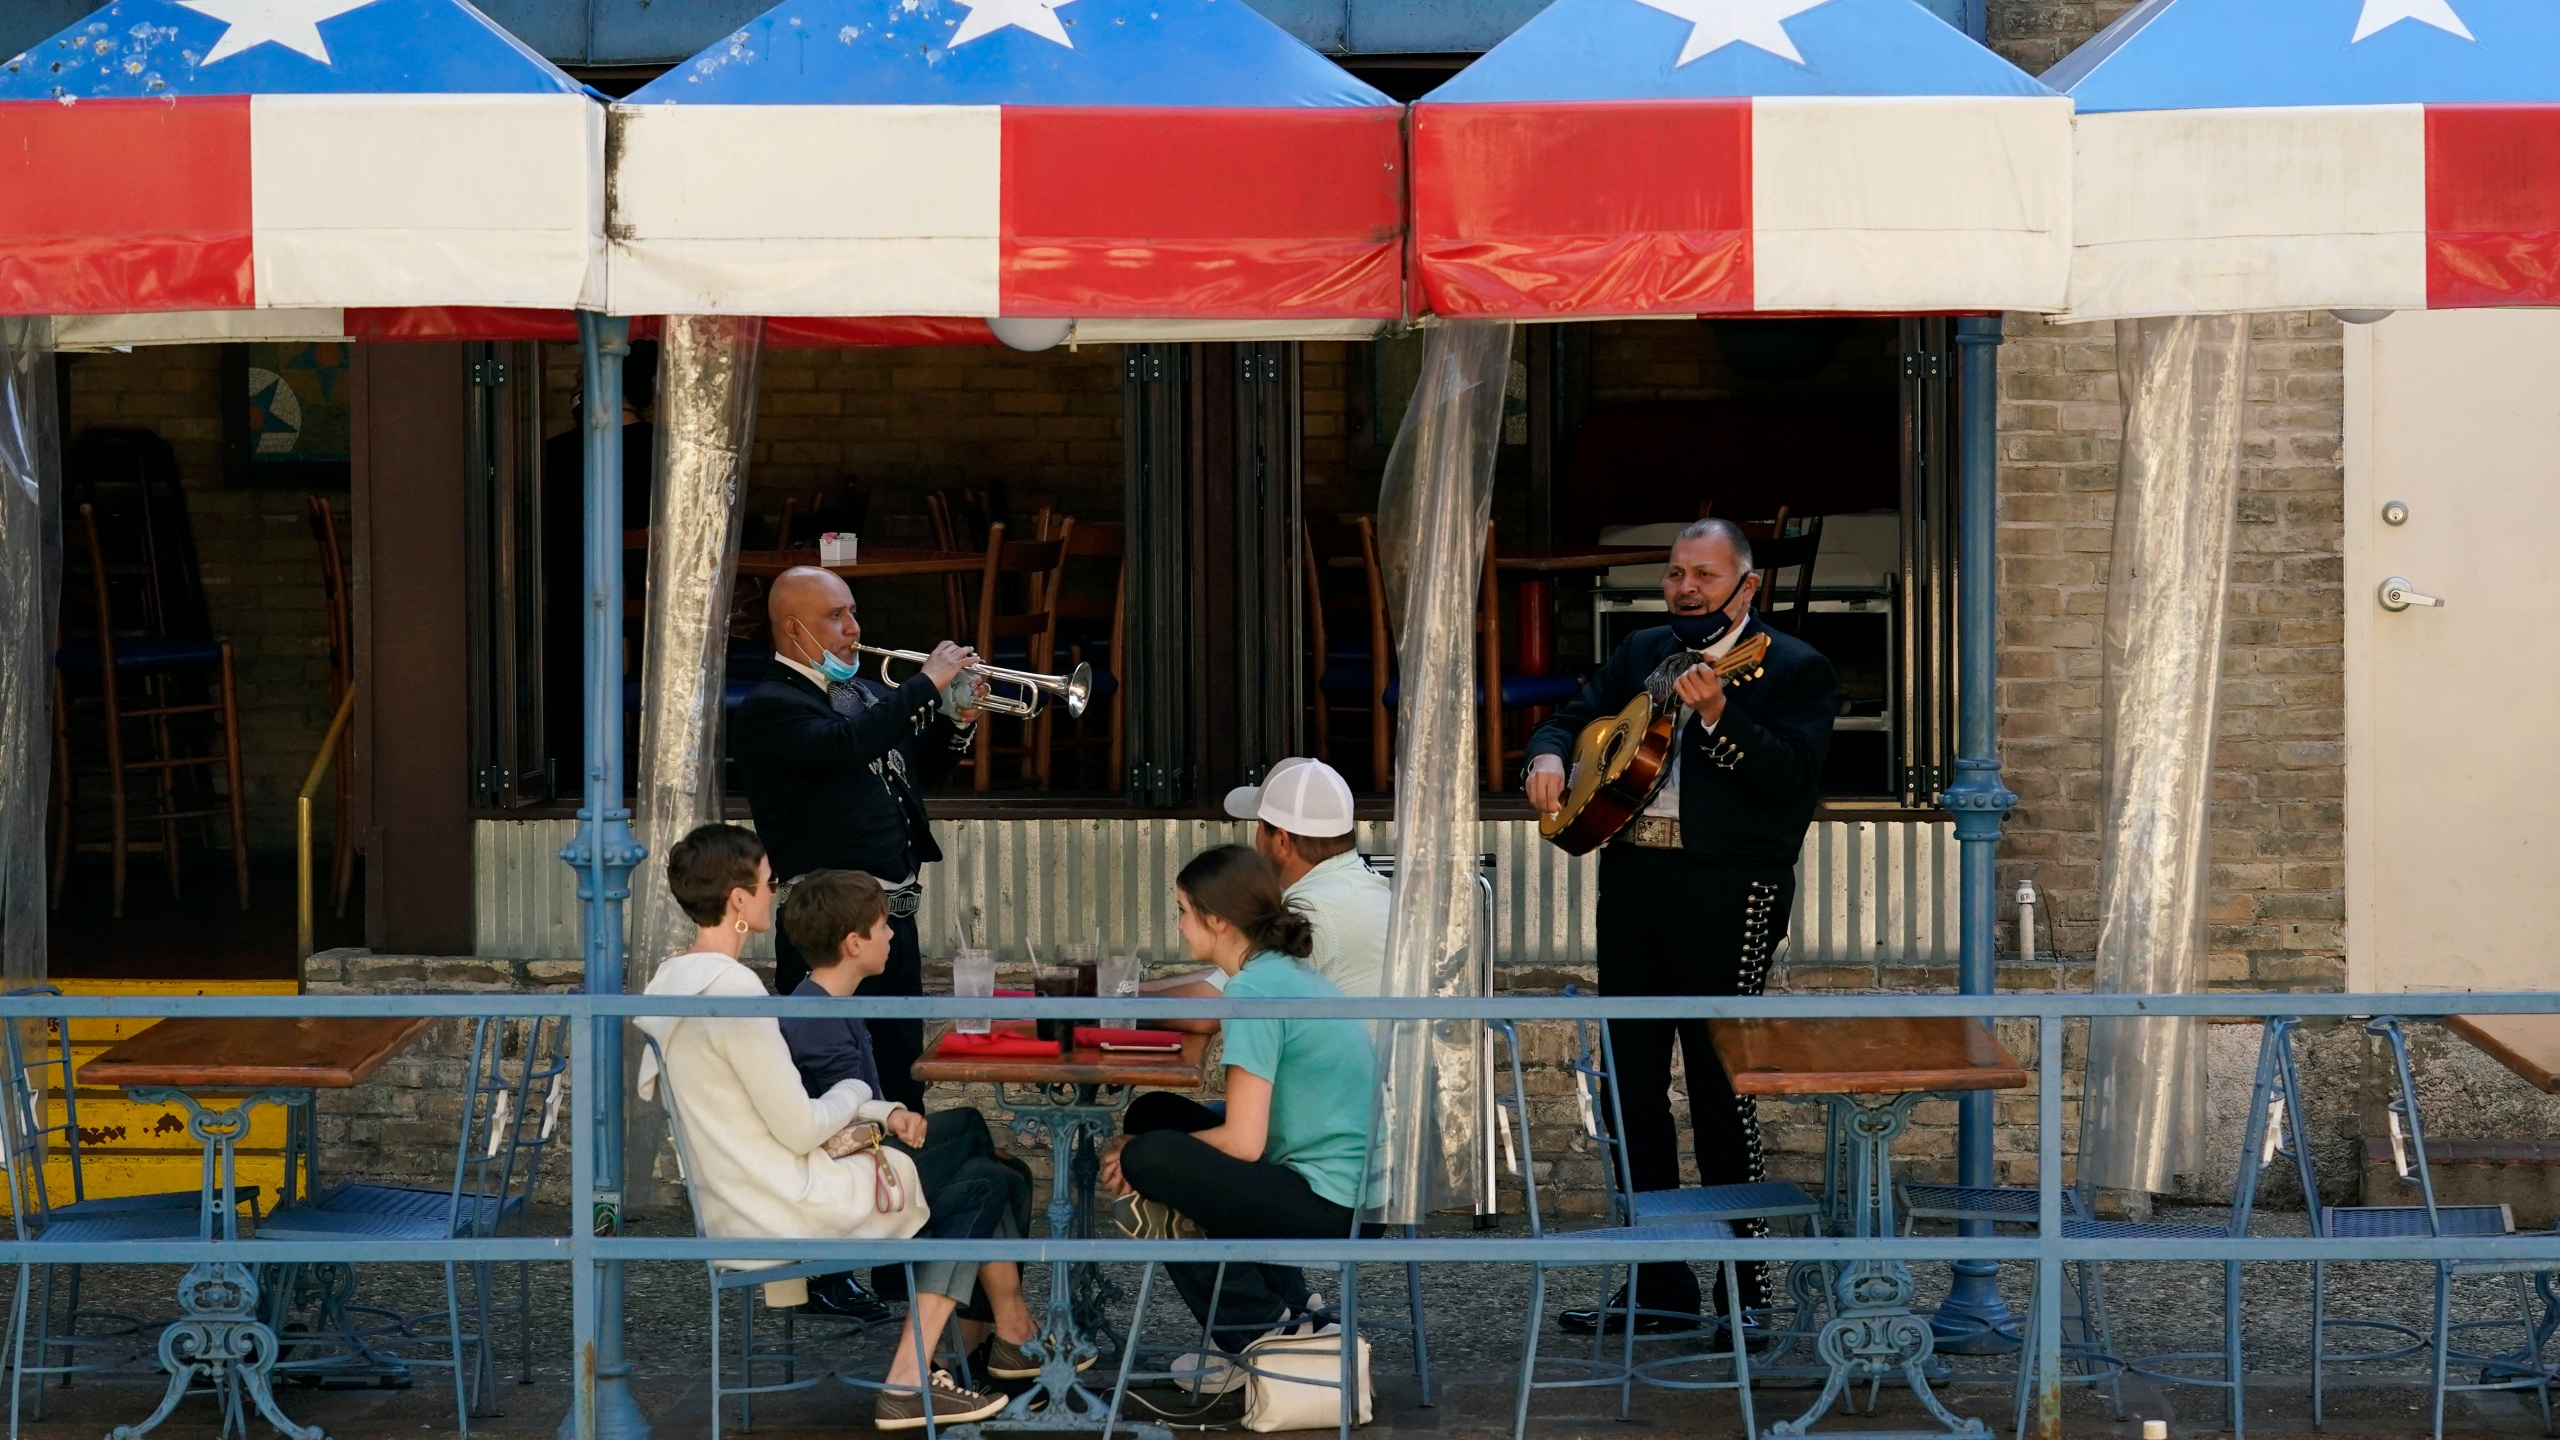 Mariachi perform for diners at a restaurant on the River Walk in San Antonio on March 3, 2021. (Eric Gay / Associated Press)